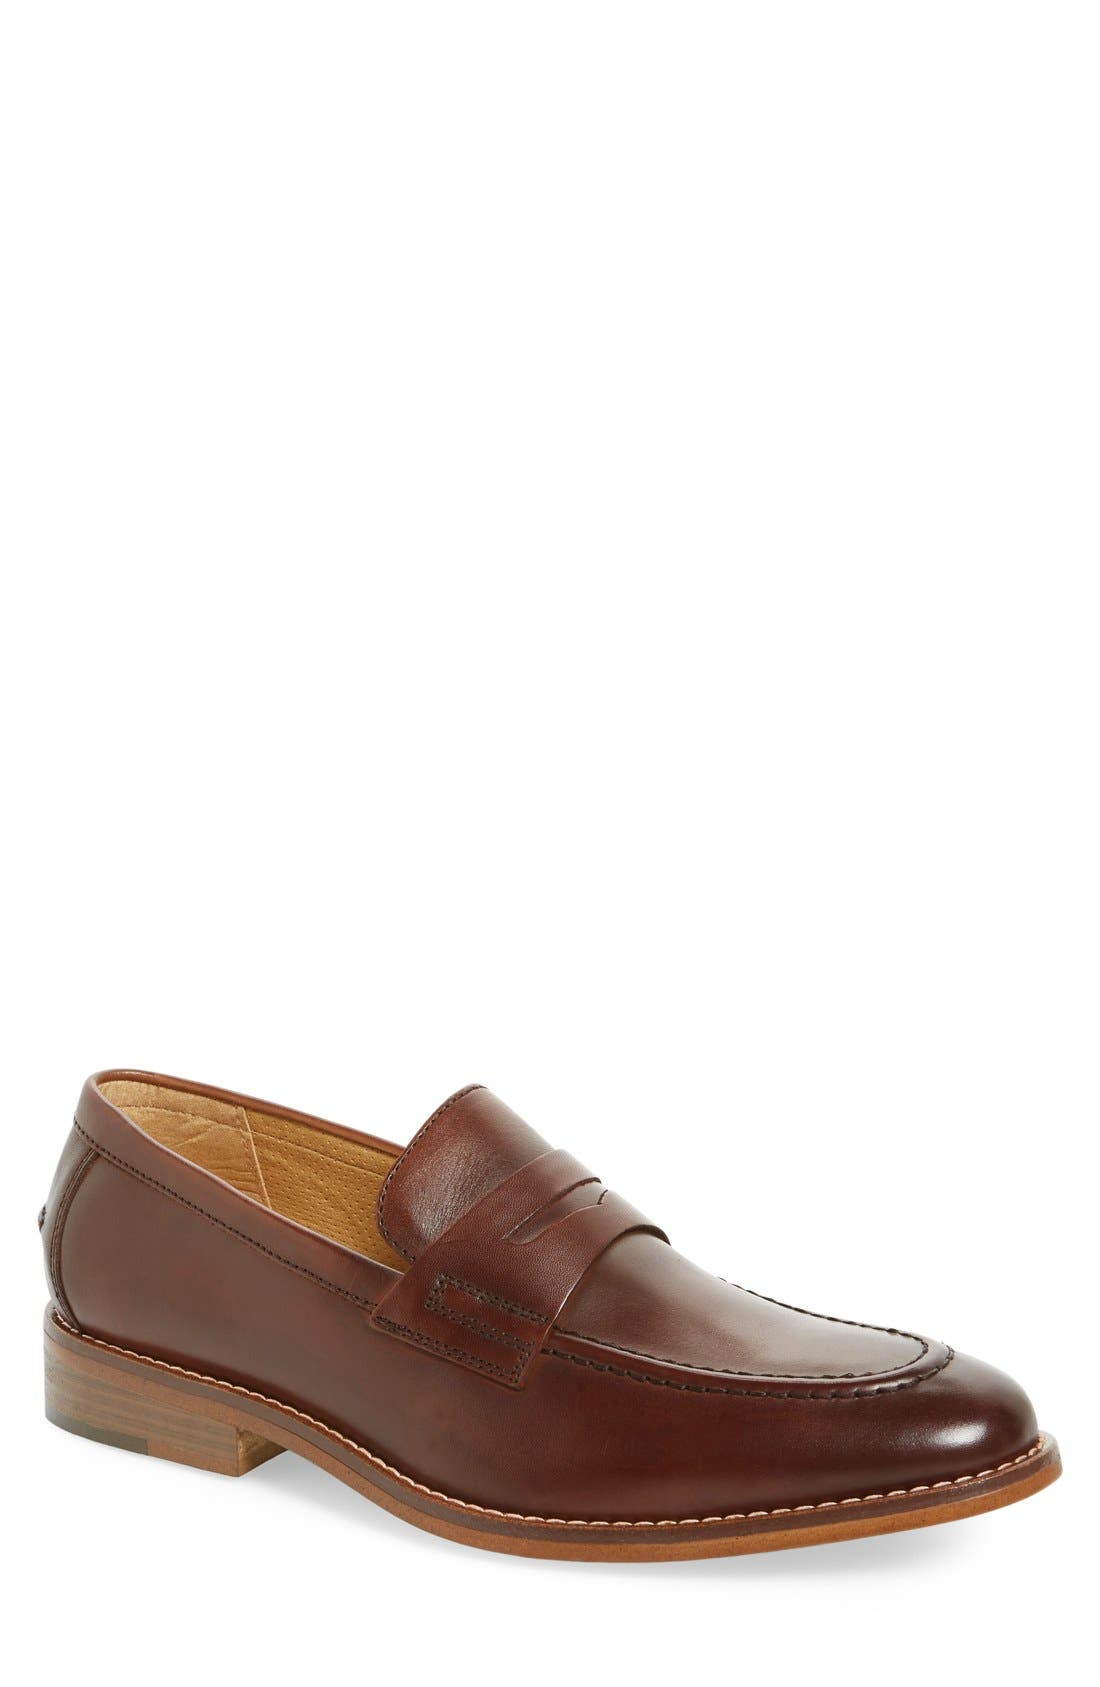 'Conner' Penny Loafer,                         Main,                         color, 201